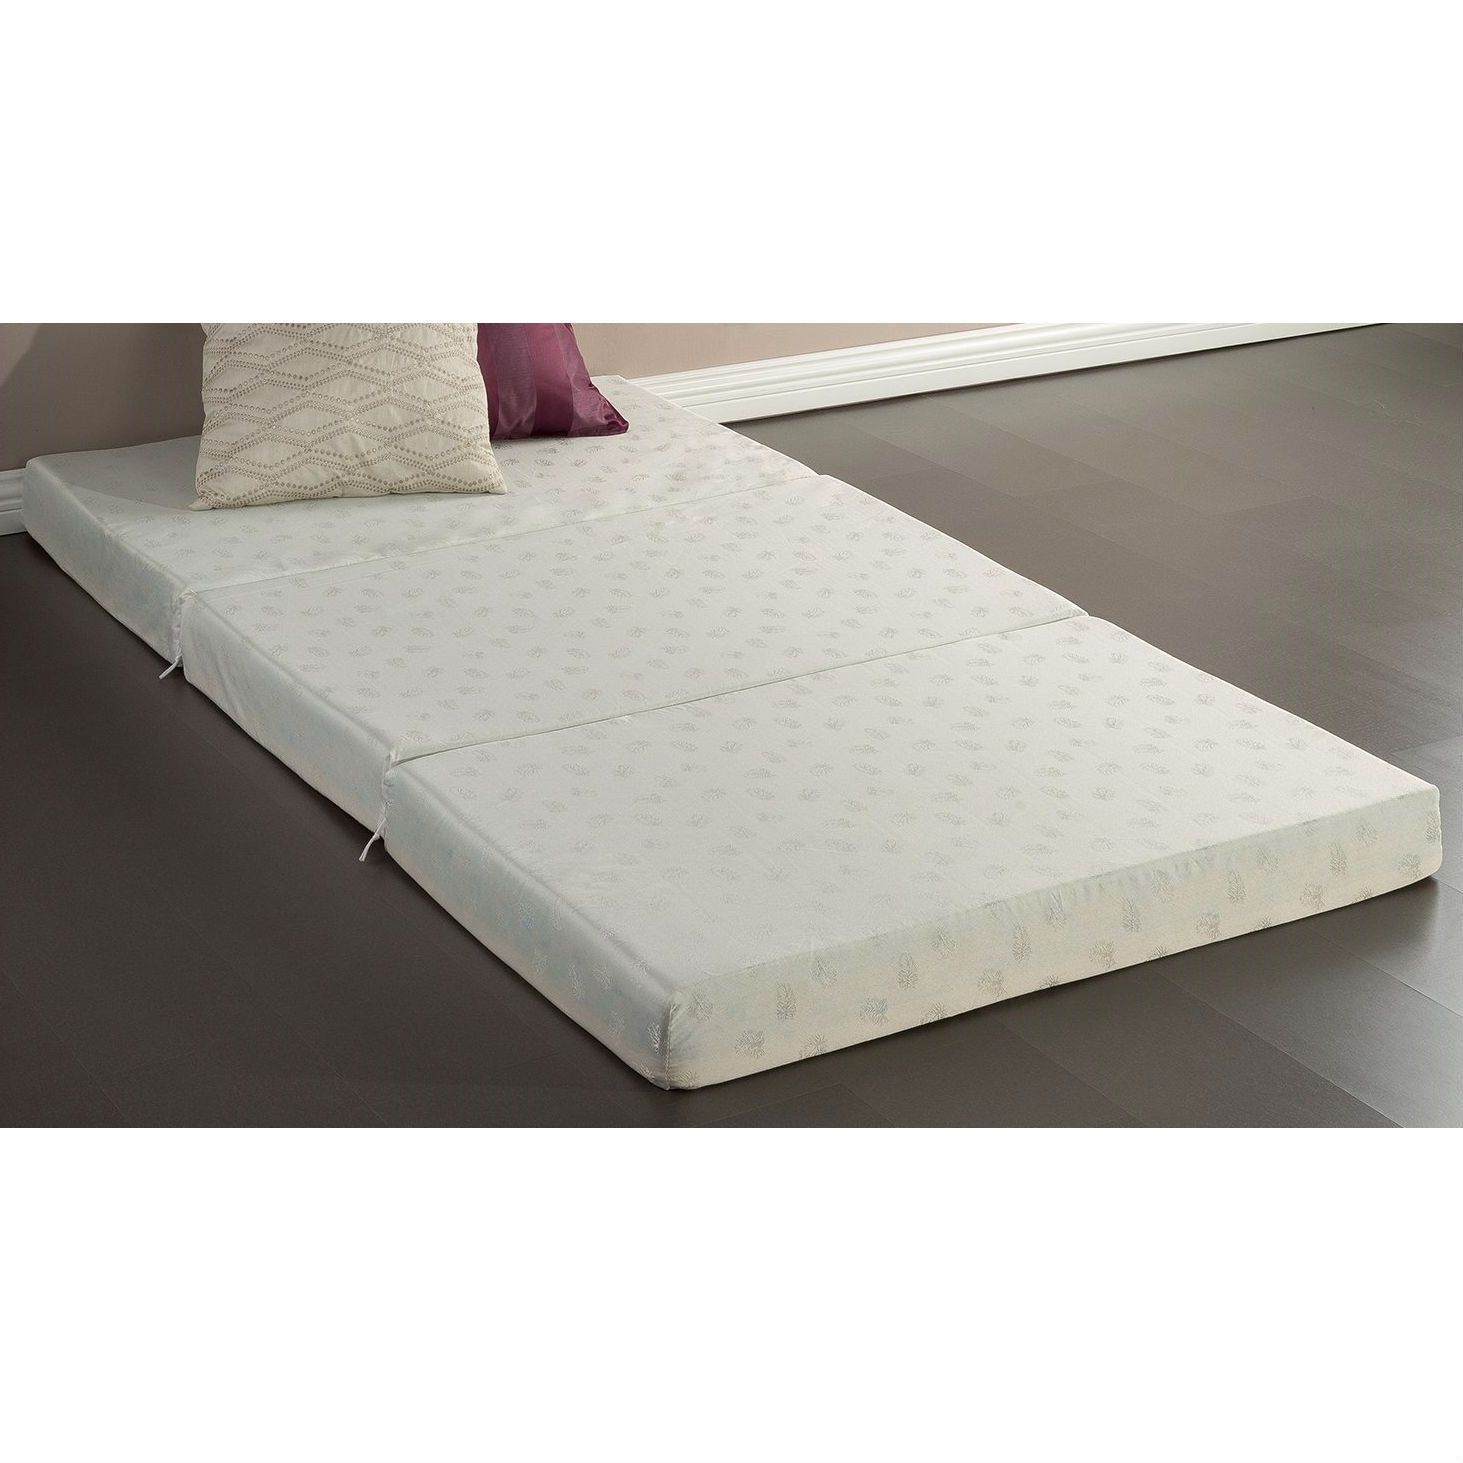 Foldable Foam Mattress Twin Size 4 Inch Thick Memory Foam Guest Bed Mat Folding Mattress